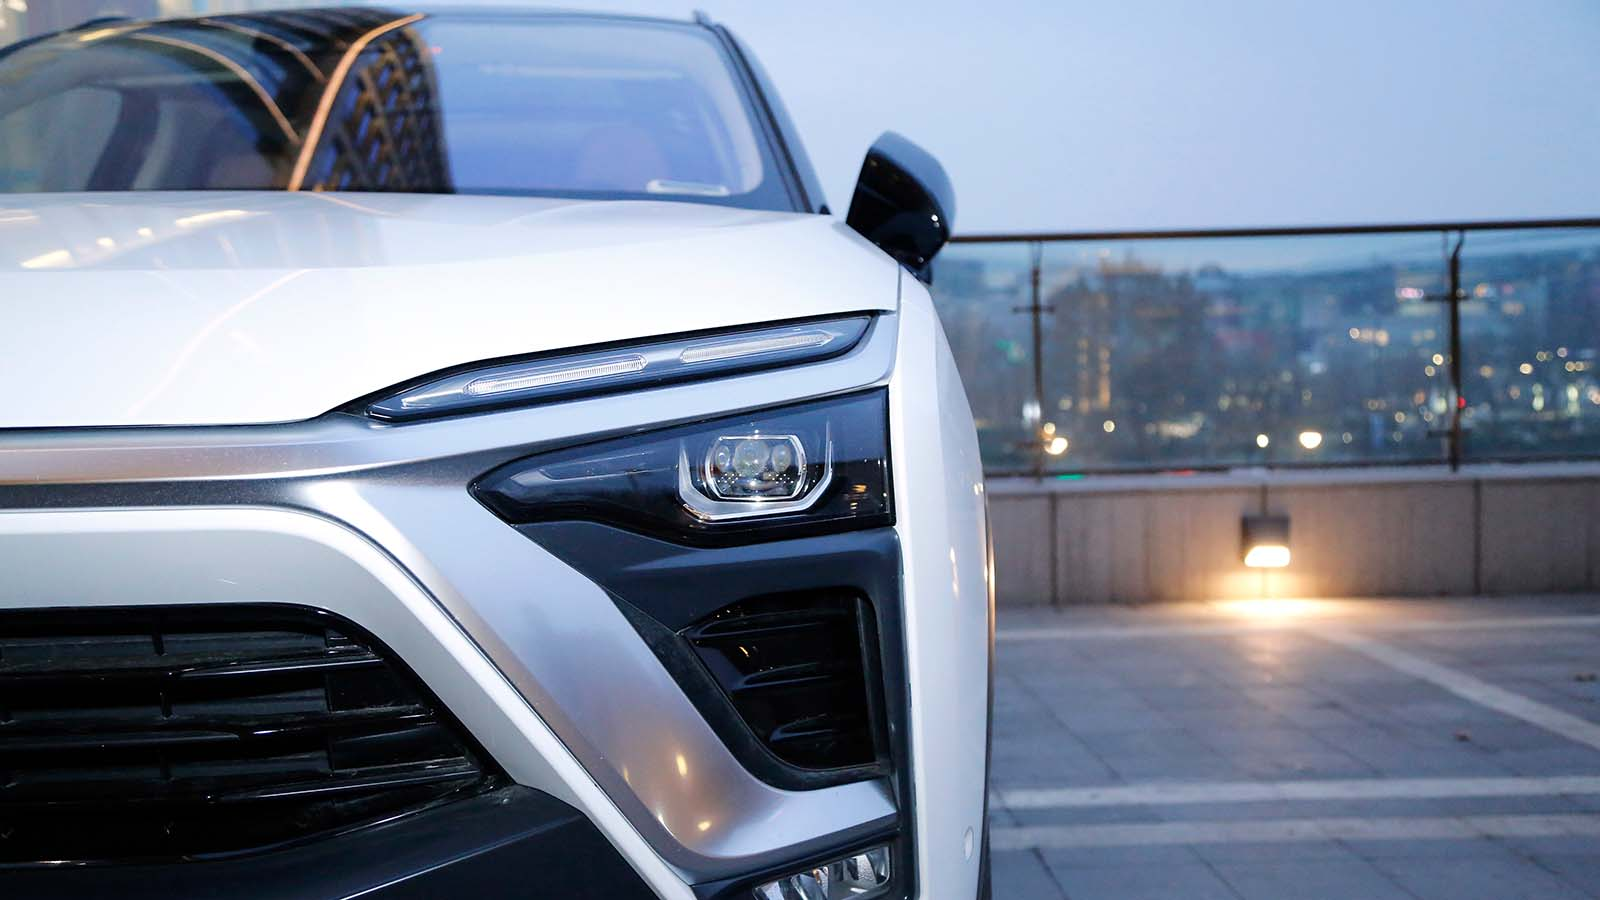 Forward Guidance Sets Ambitious but Realistic Tone for Nio